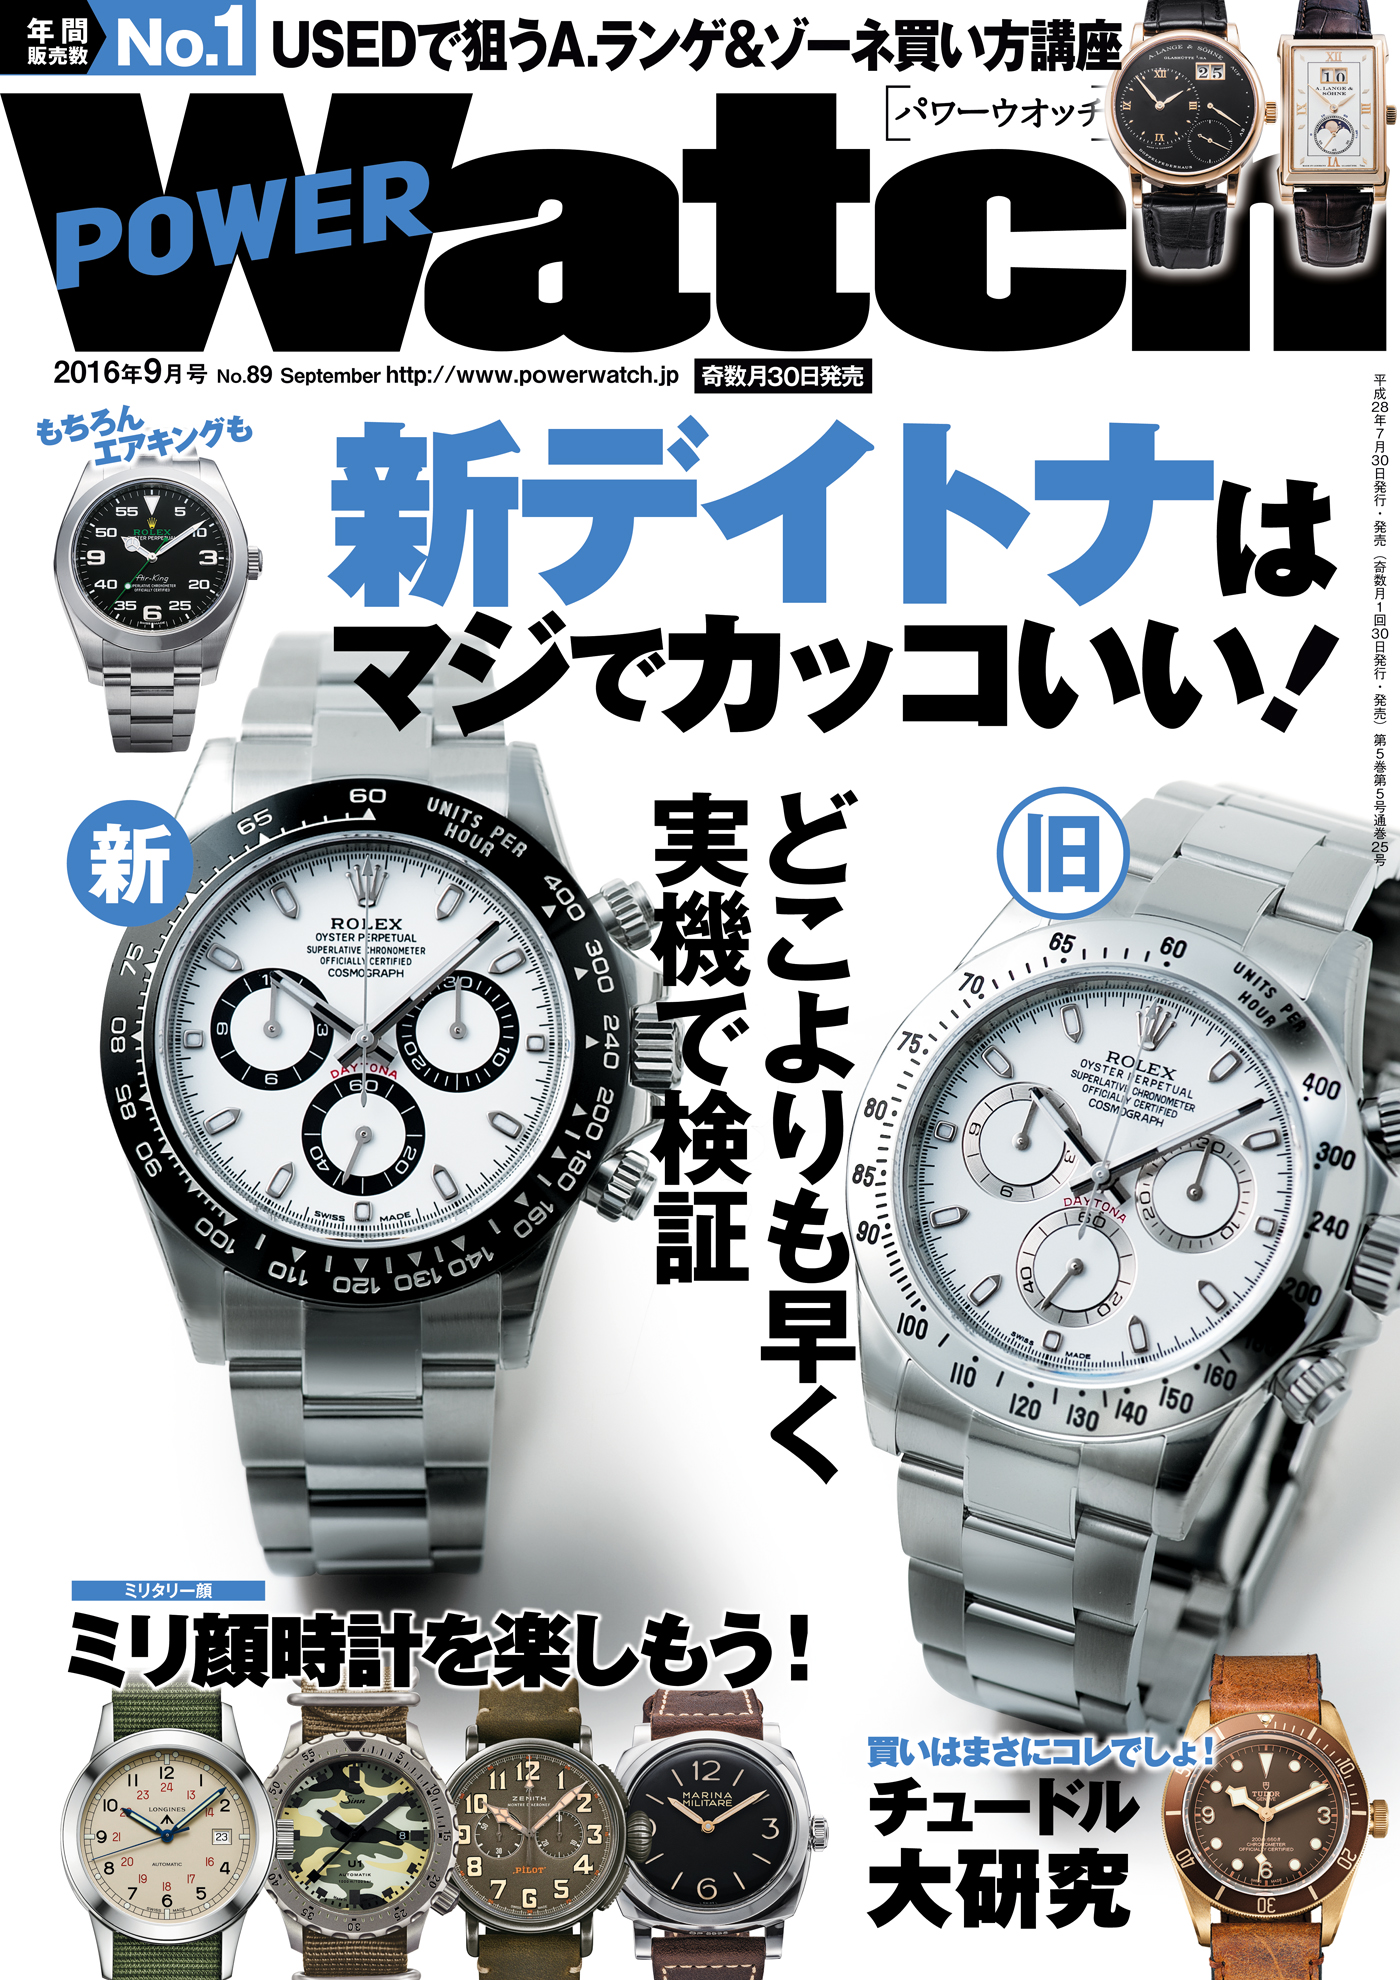 C's-Factory|電子書籍|POWER Watch No.89